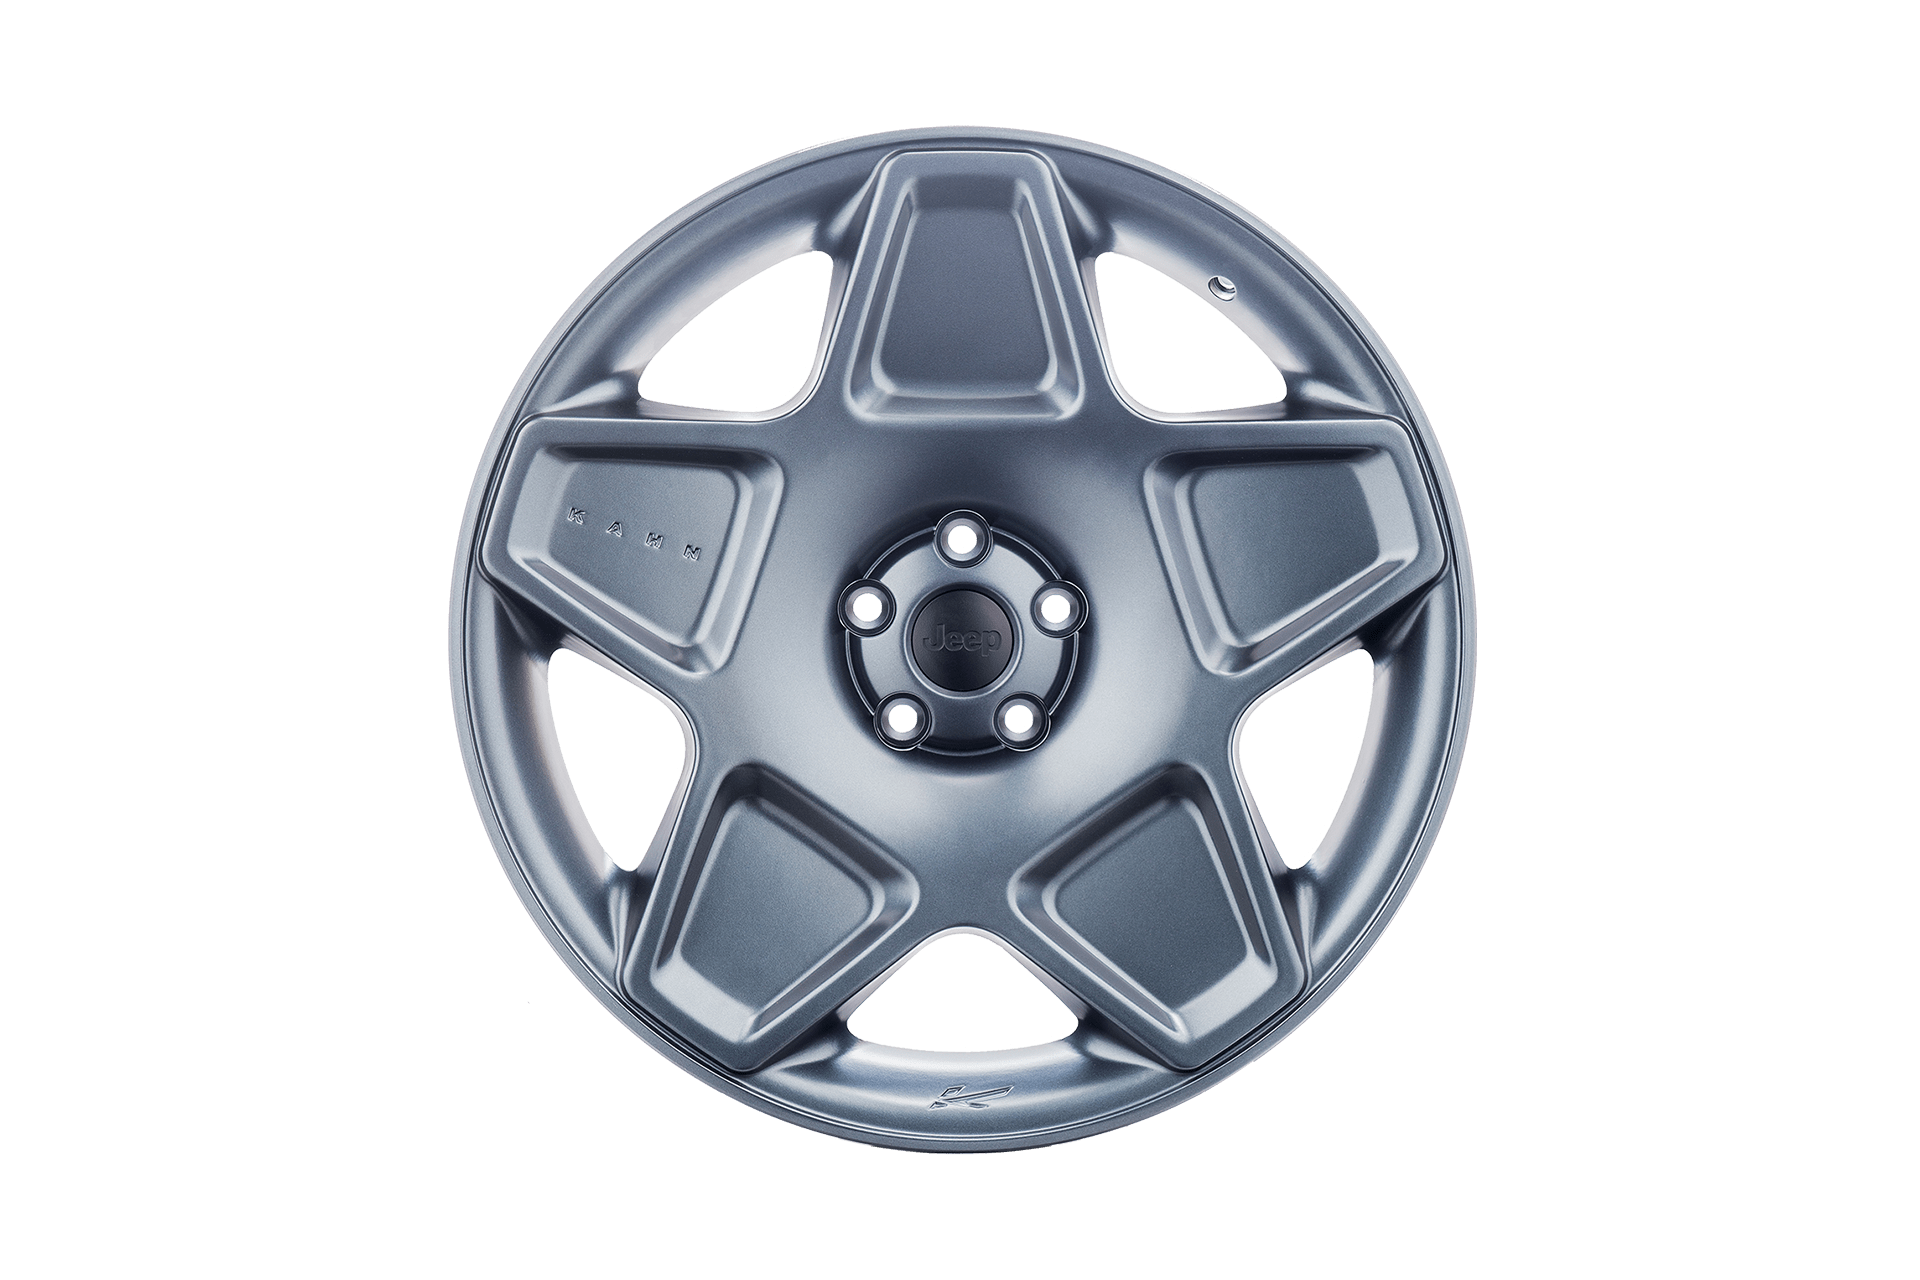 Jeep Renegade Mondial Retro Light Alloy Wheels by Chelsea Truck Company - Image 2997